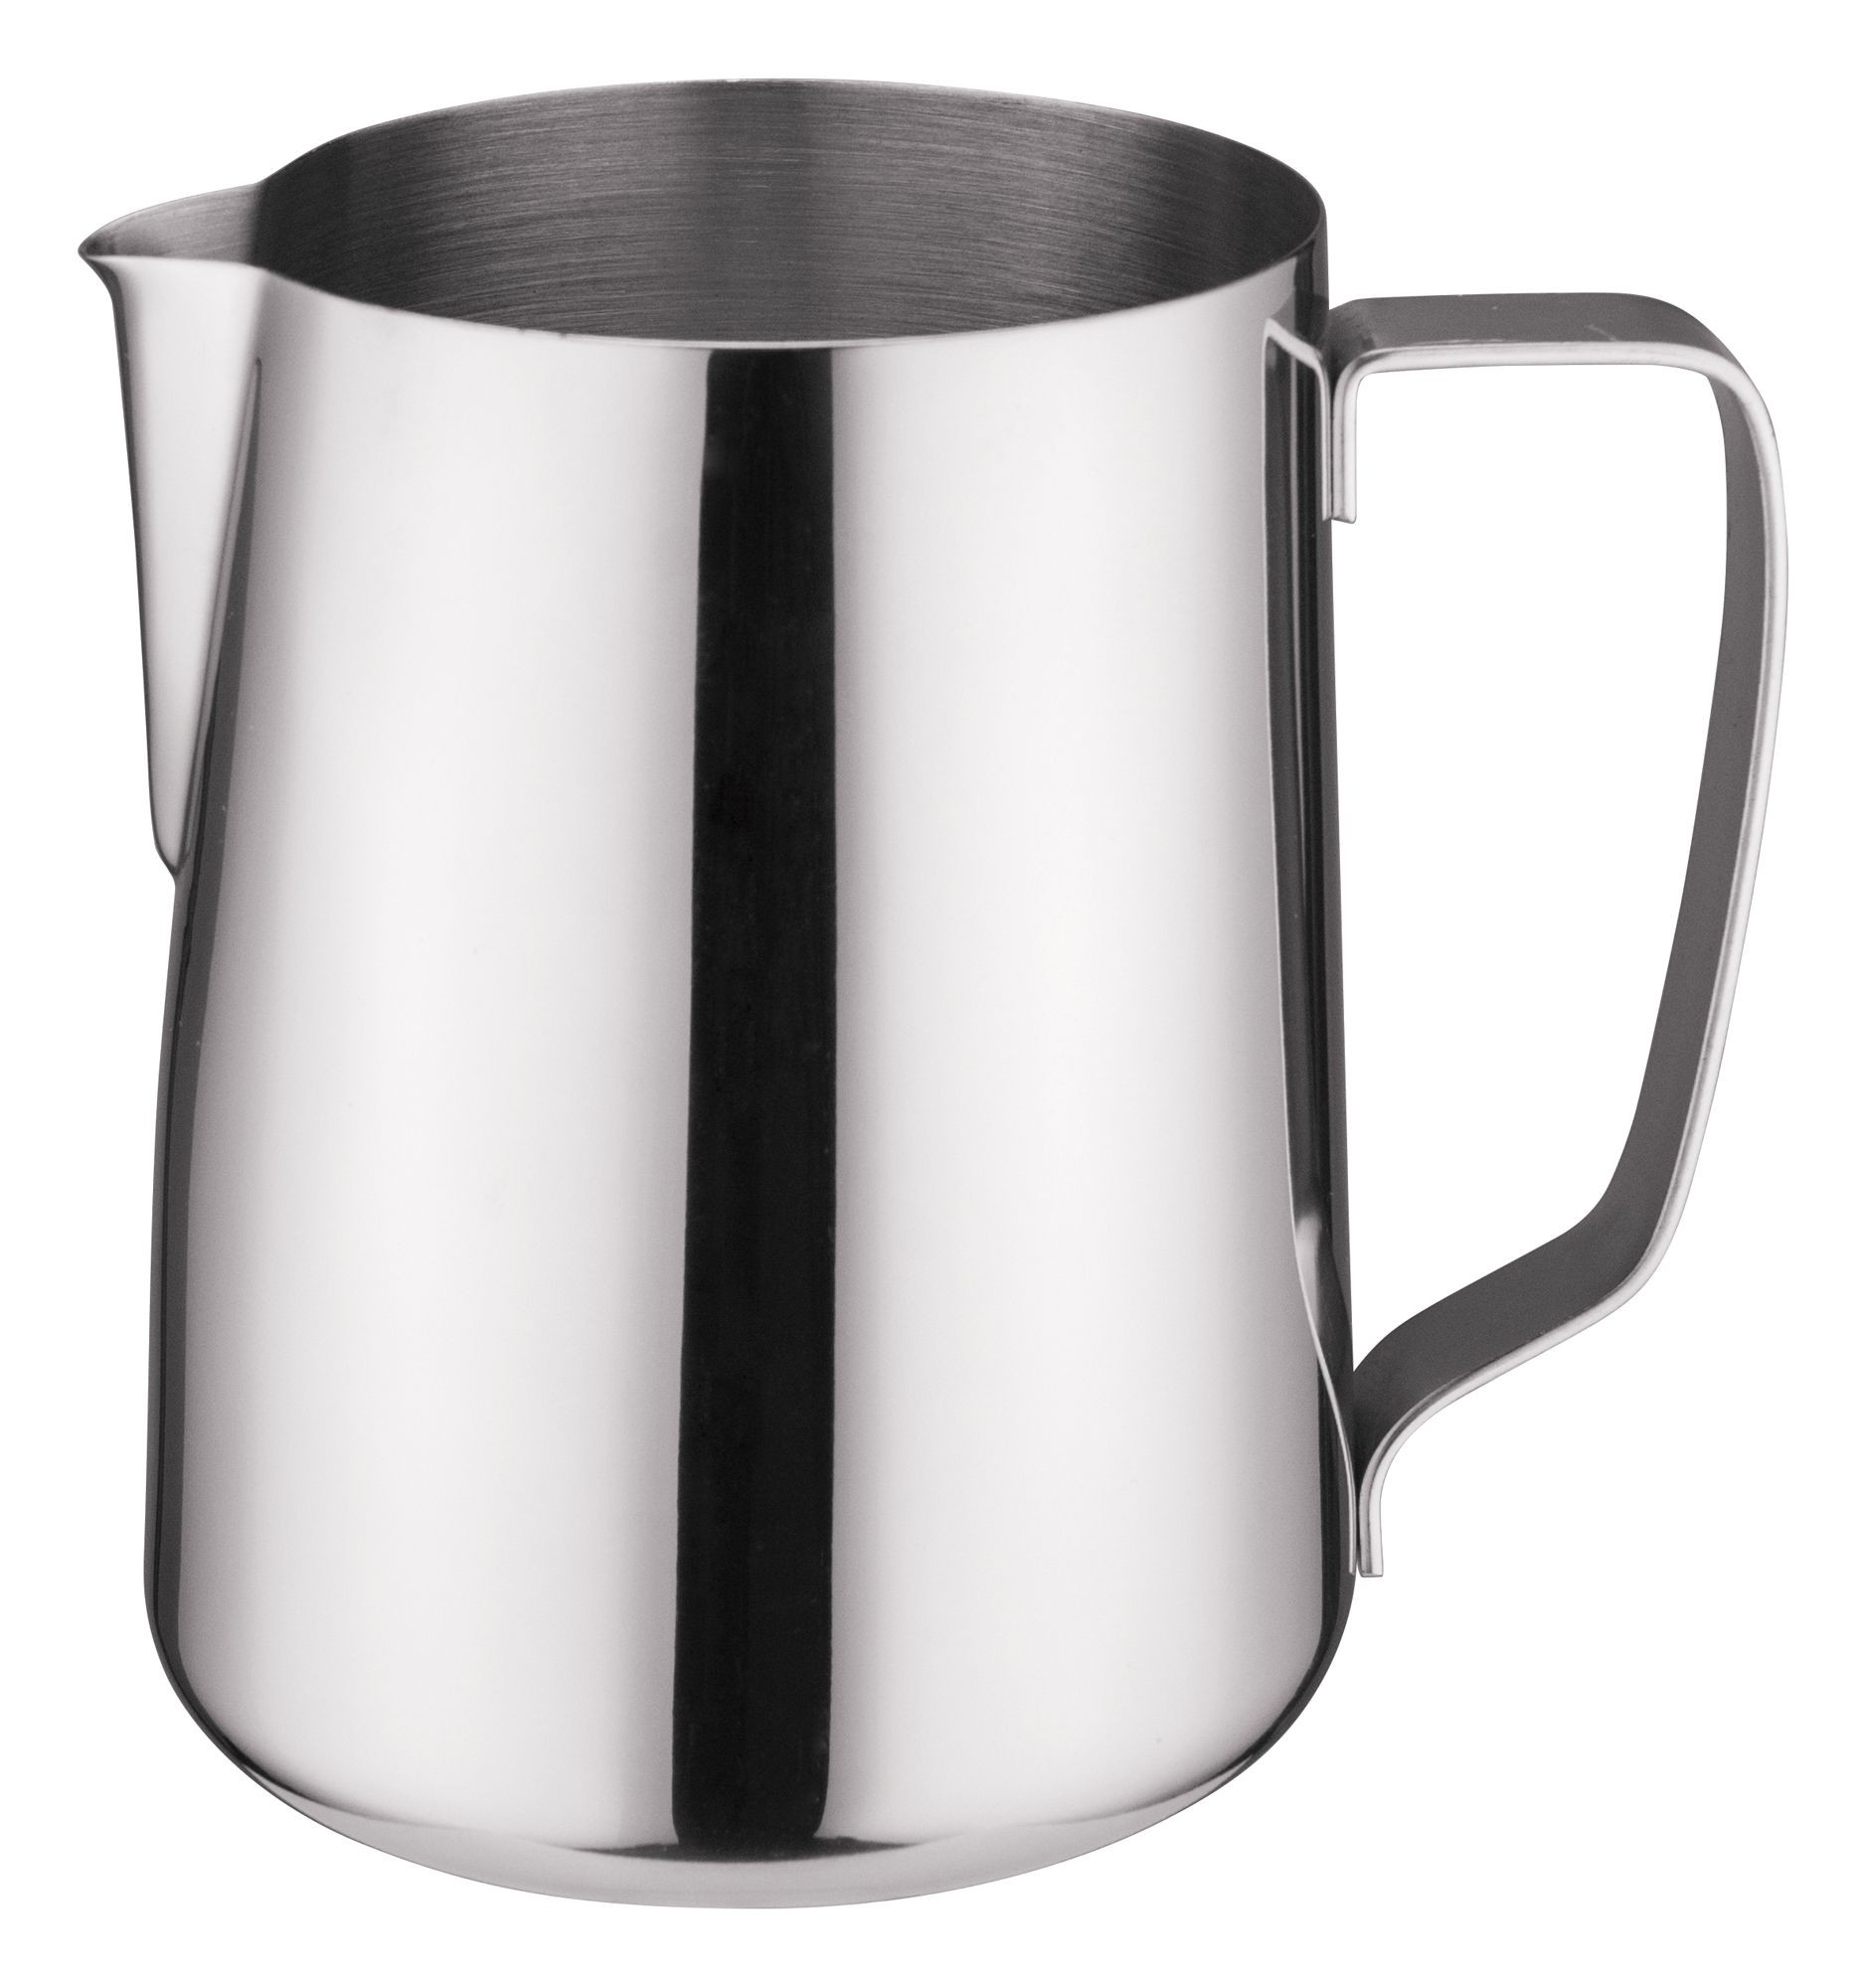 Stainless Steel 66 Oz. Water Pitcher